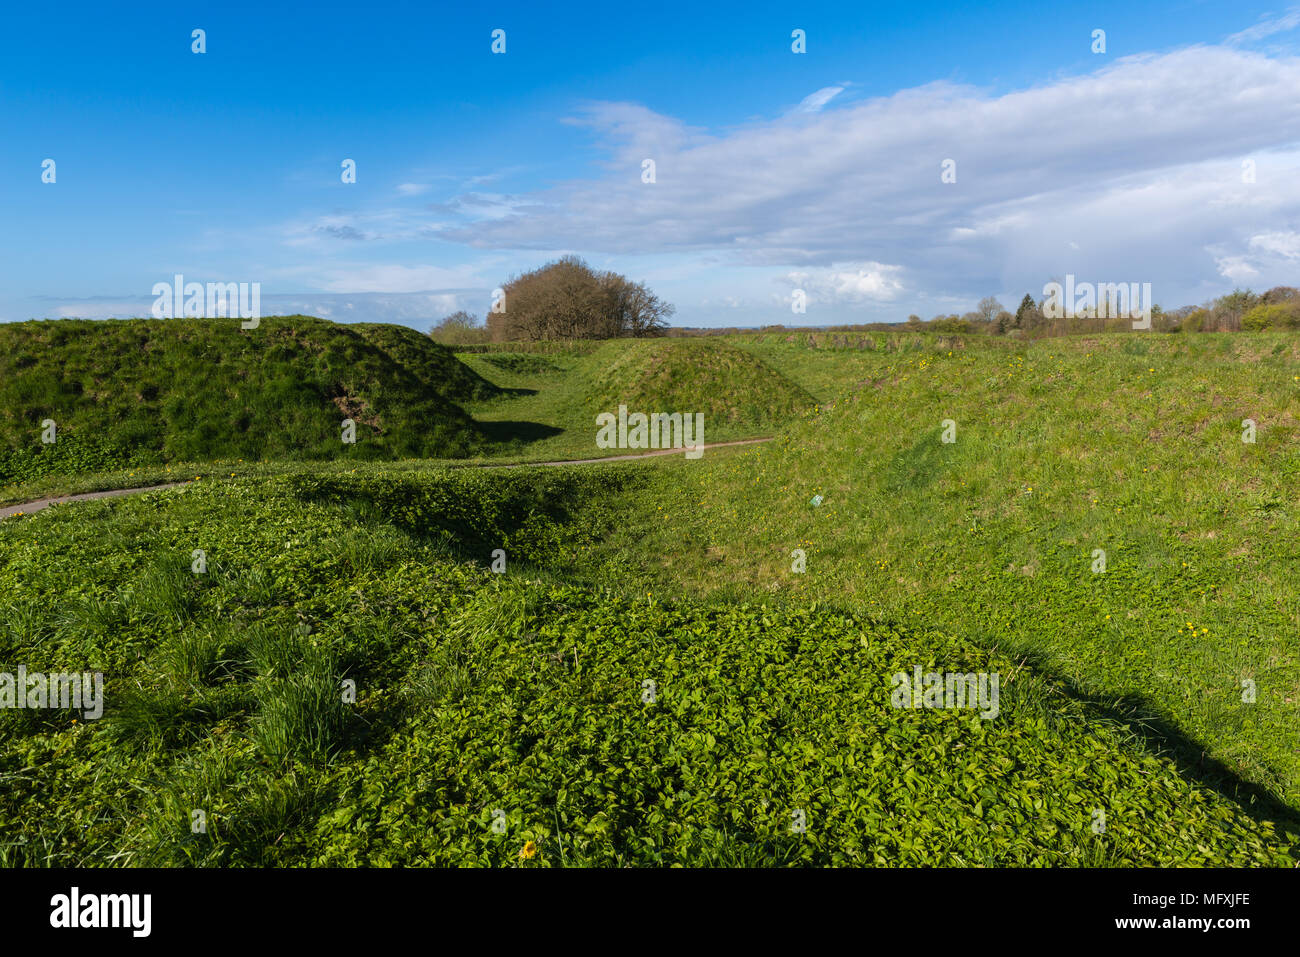 Bastion 14, a modified construction of the medieval Danevirke or Daneverk for the German - Danish war of 1864, Dannewerk, Schleswig, Germany, Europe - Stock Image